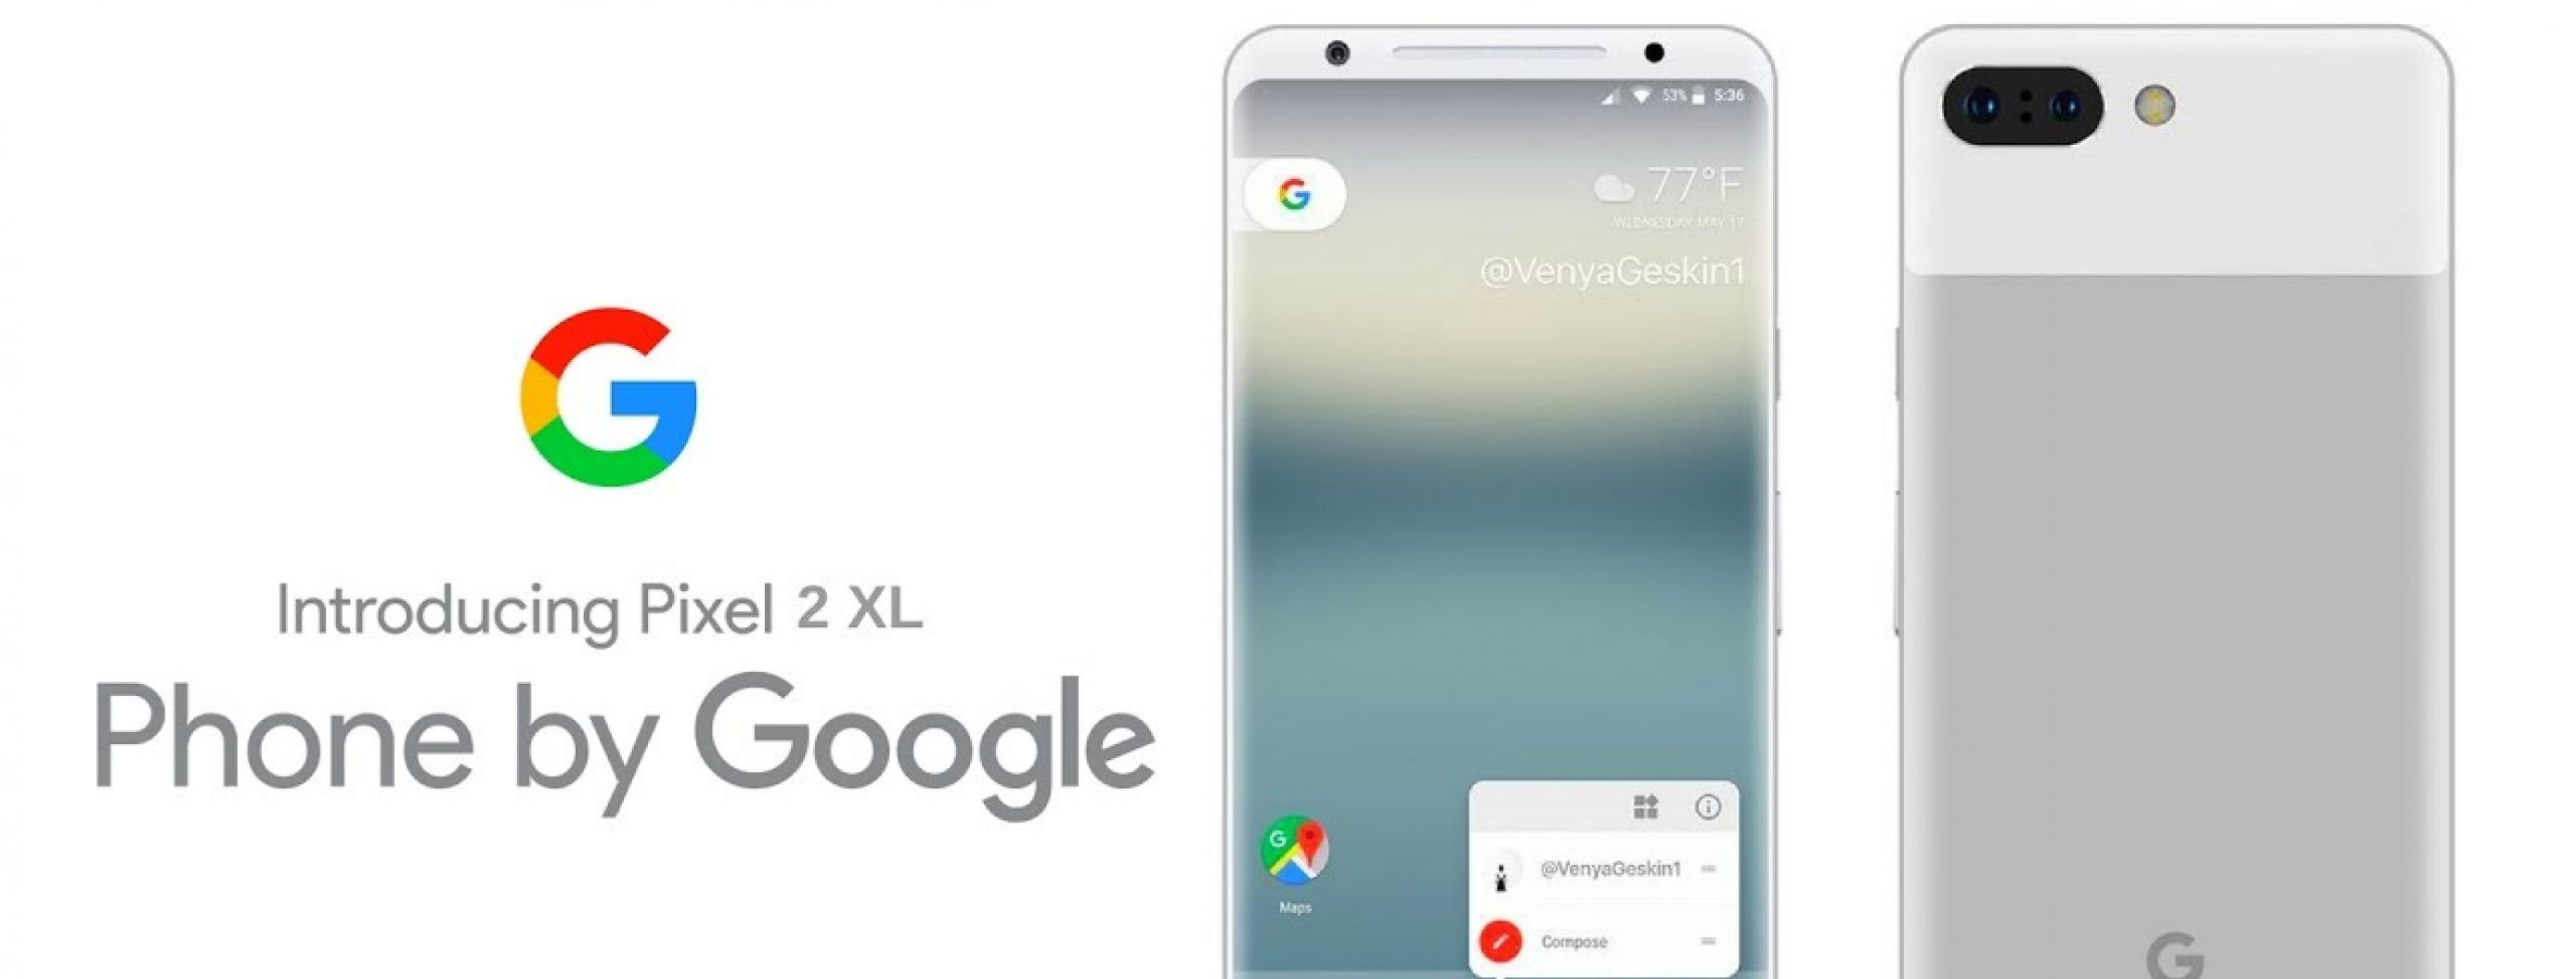 Google's Pixel 2 XL vs. Apple's iPhone X: The Results May Surprise You